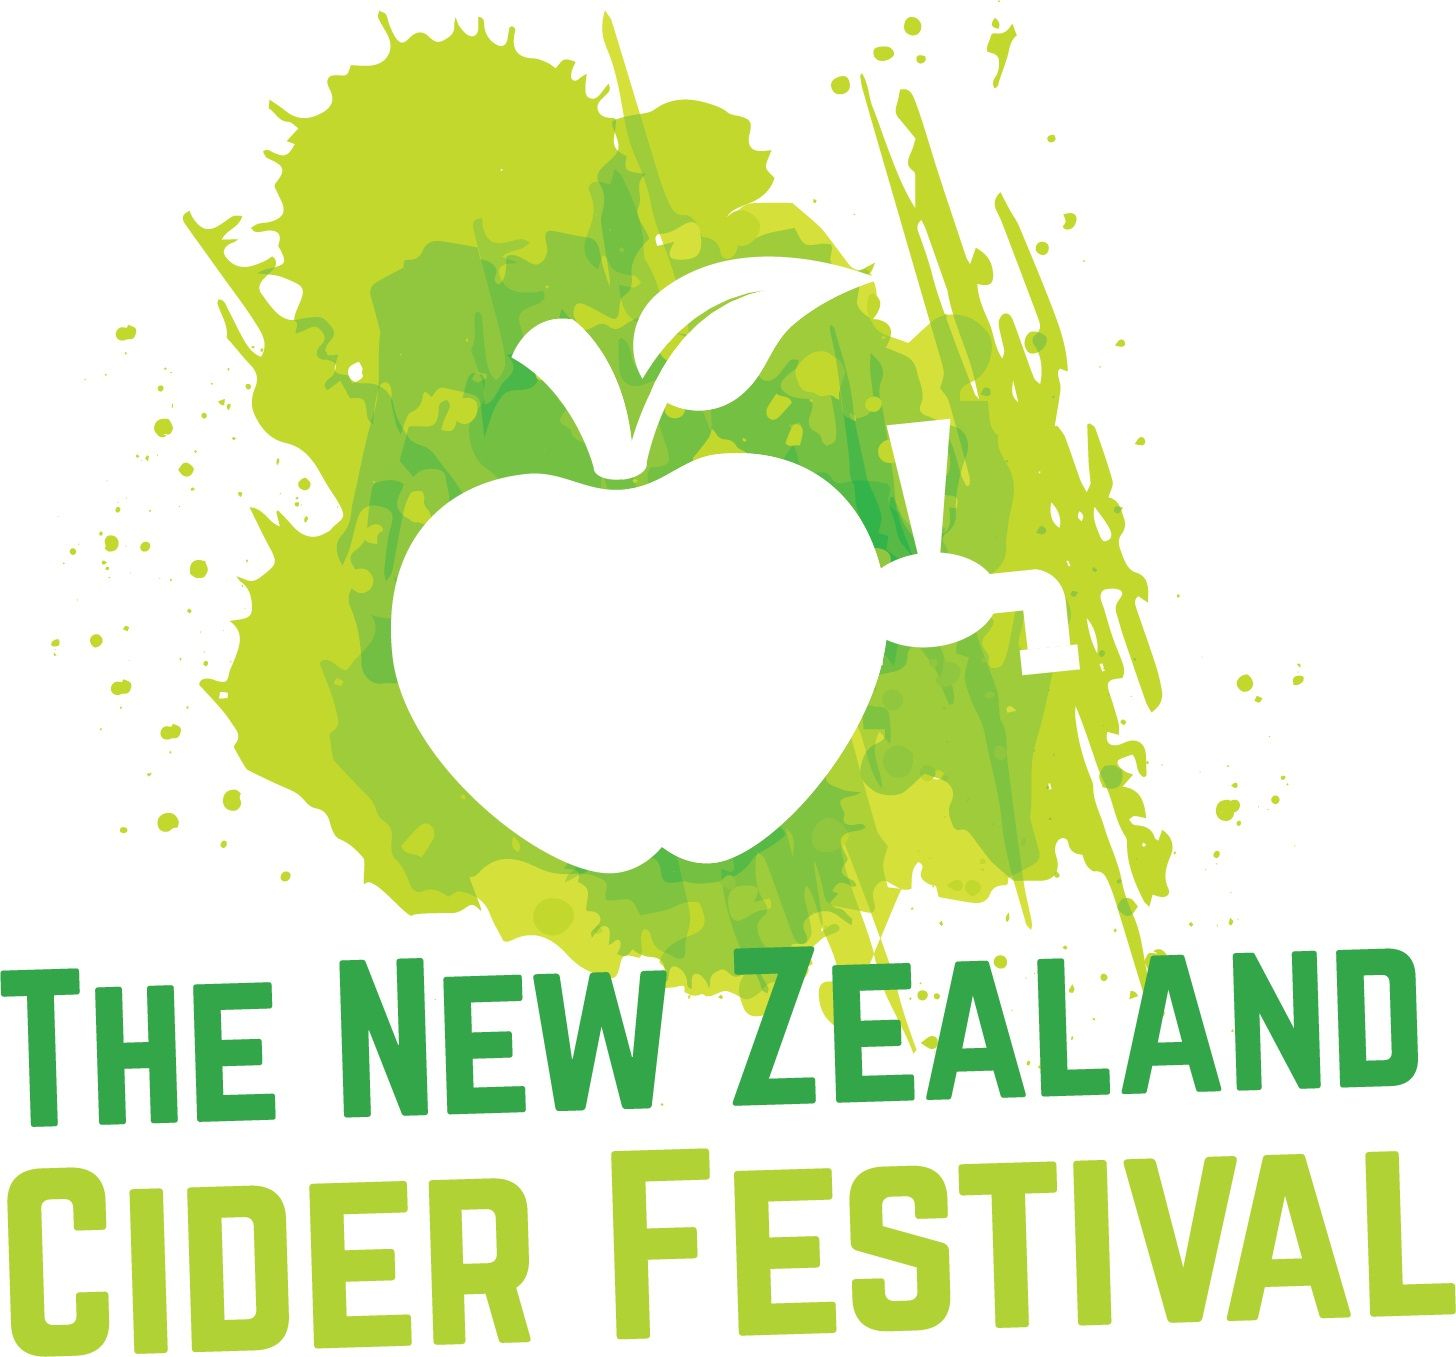 The NZ Cider Festival